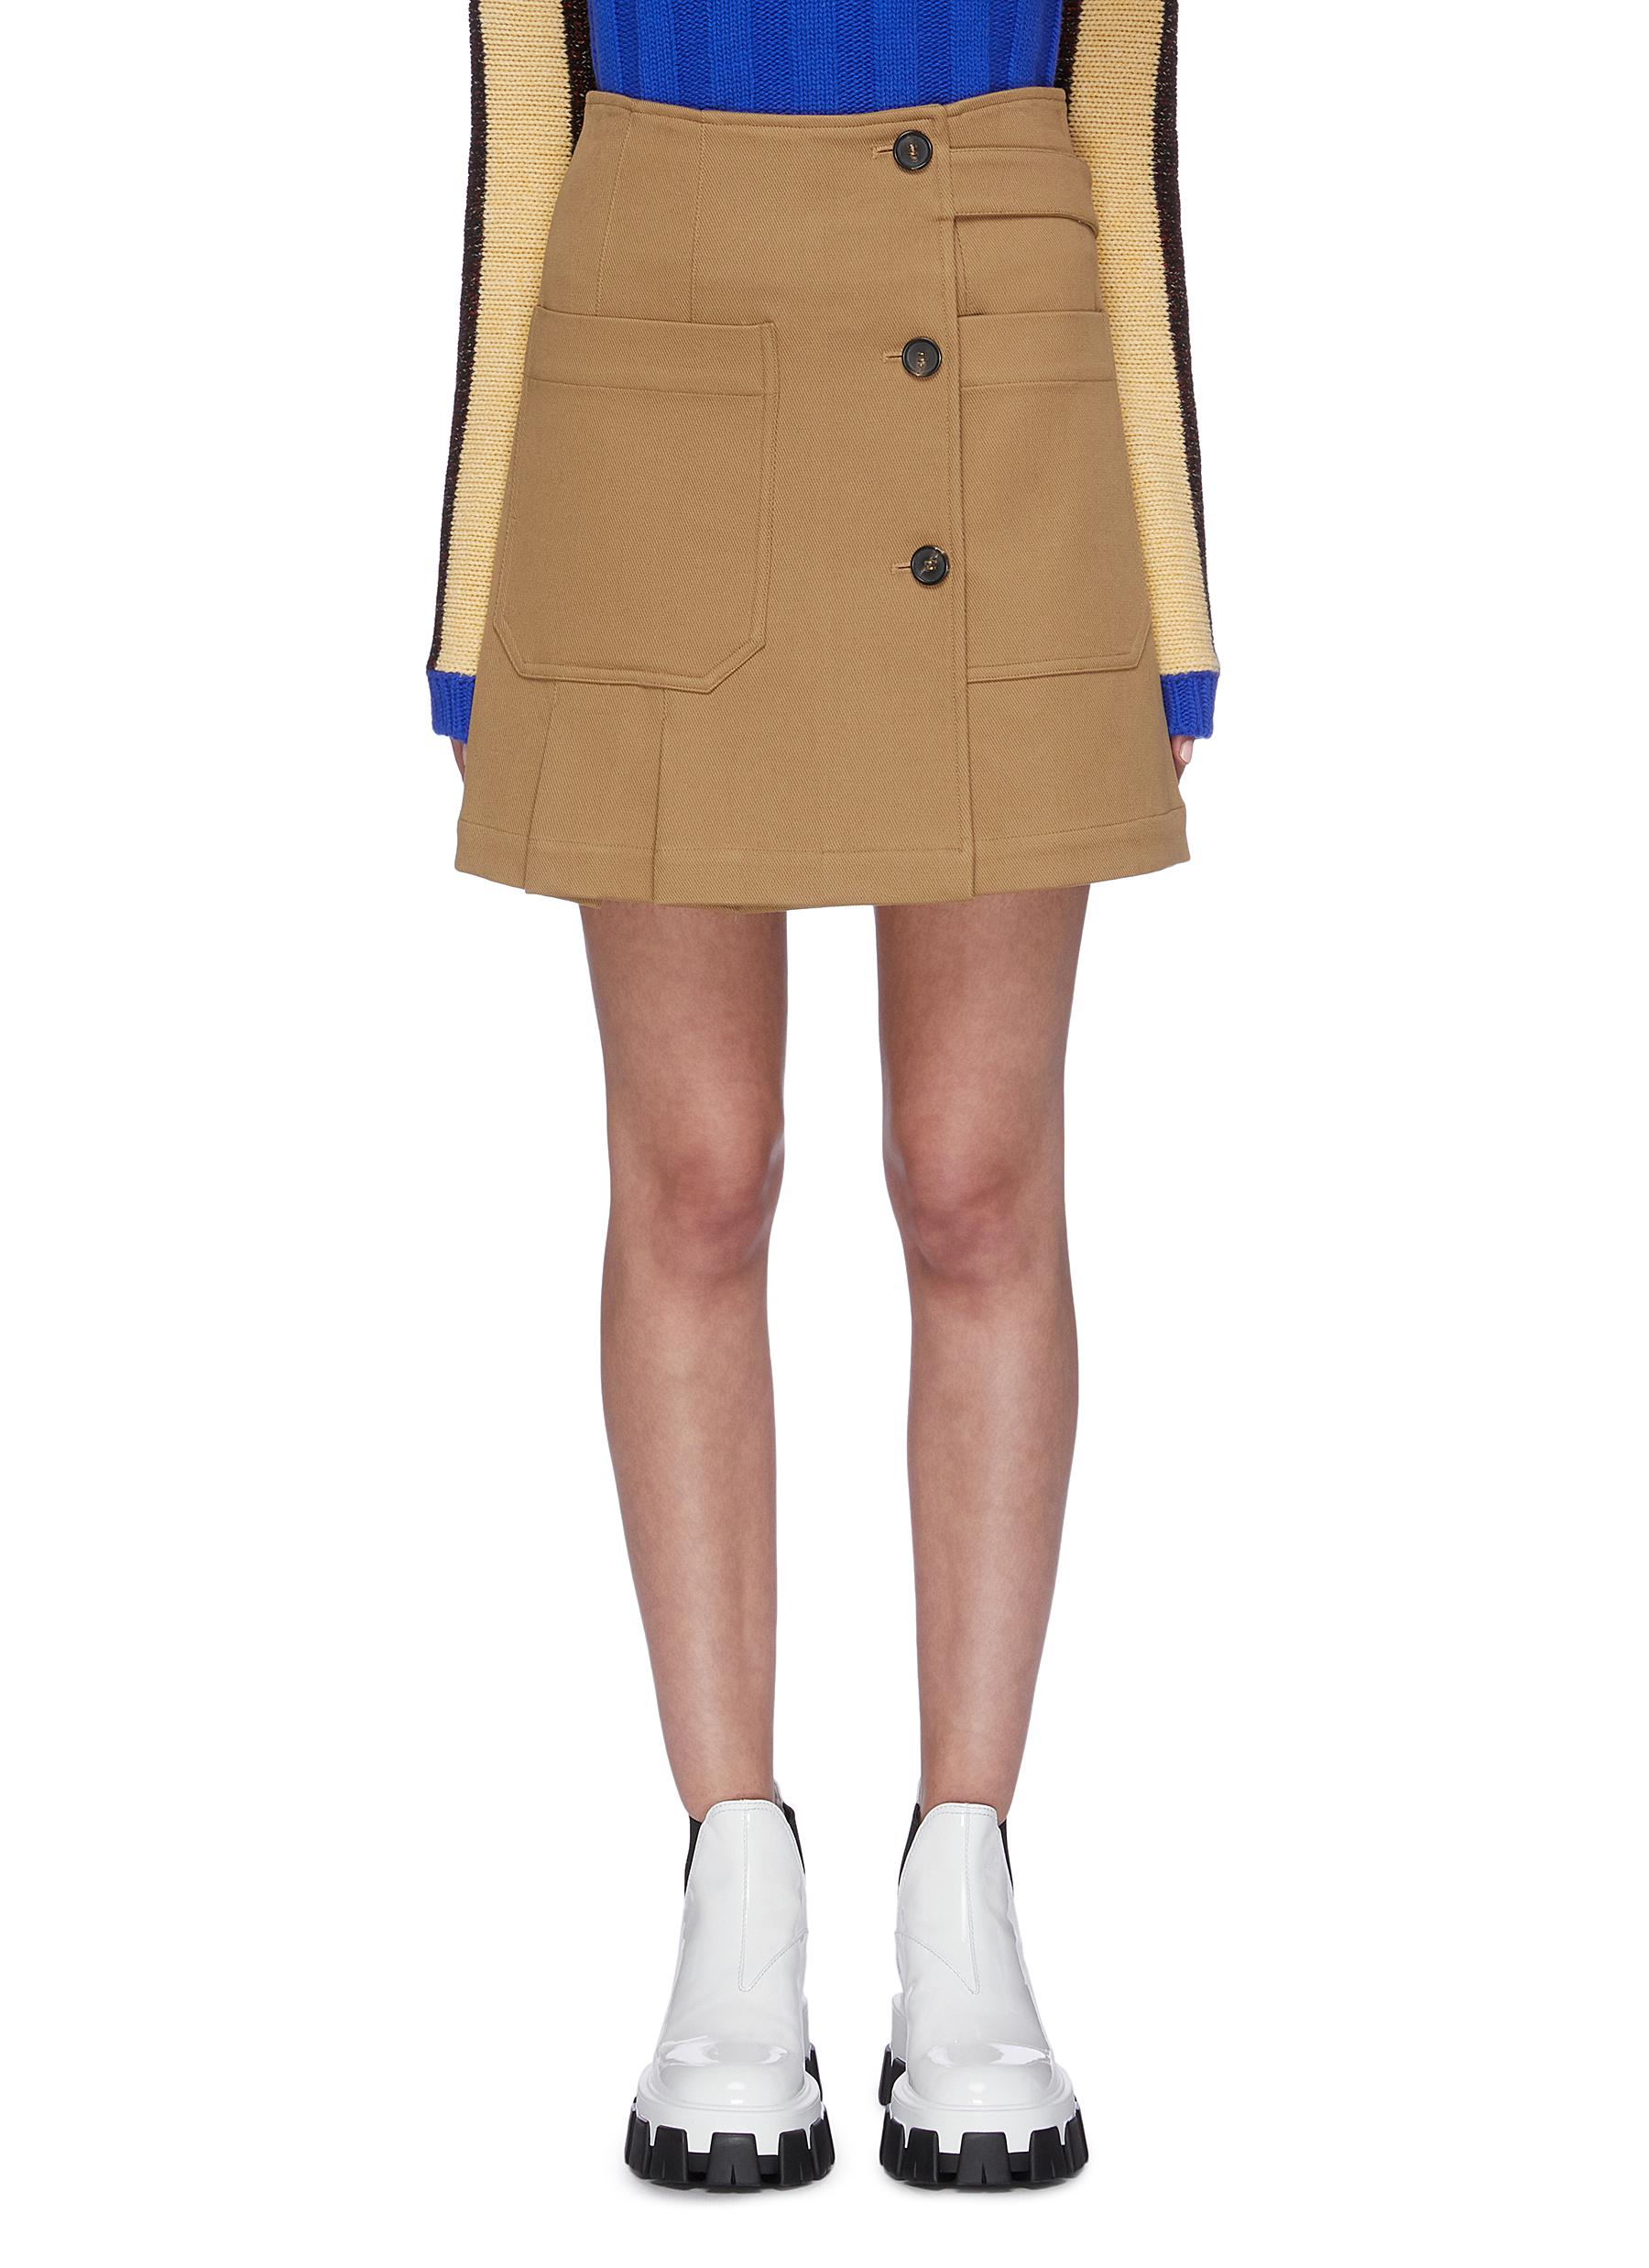 Patch pocket asymmetric pleated twill skirt by Plan C